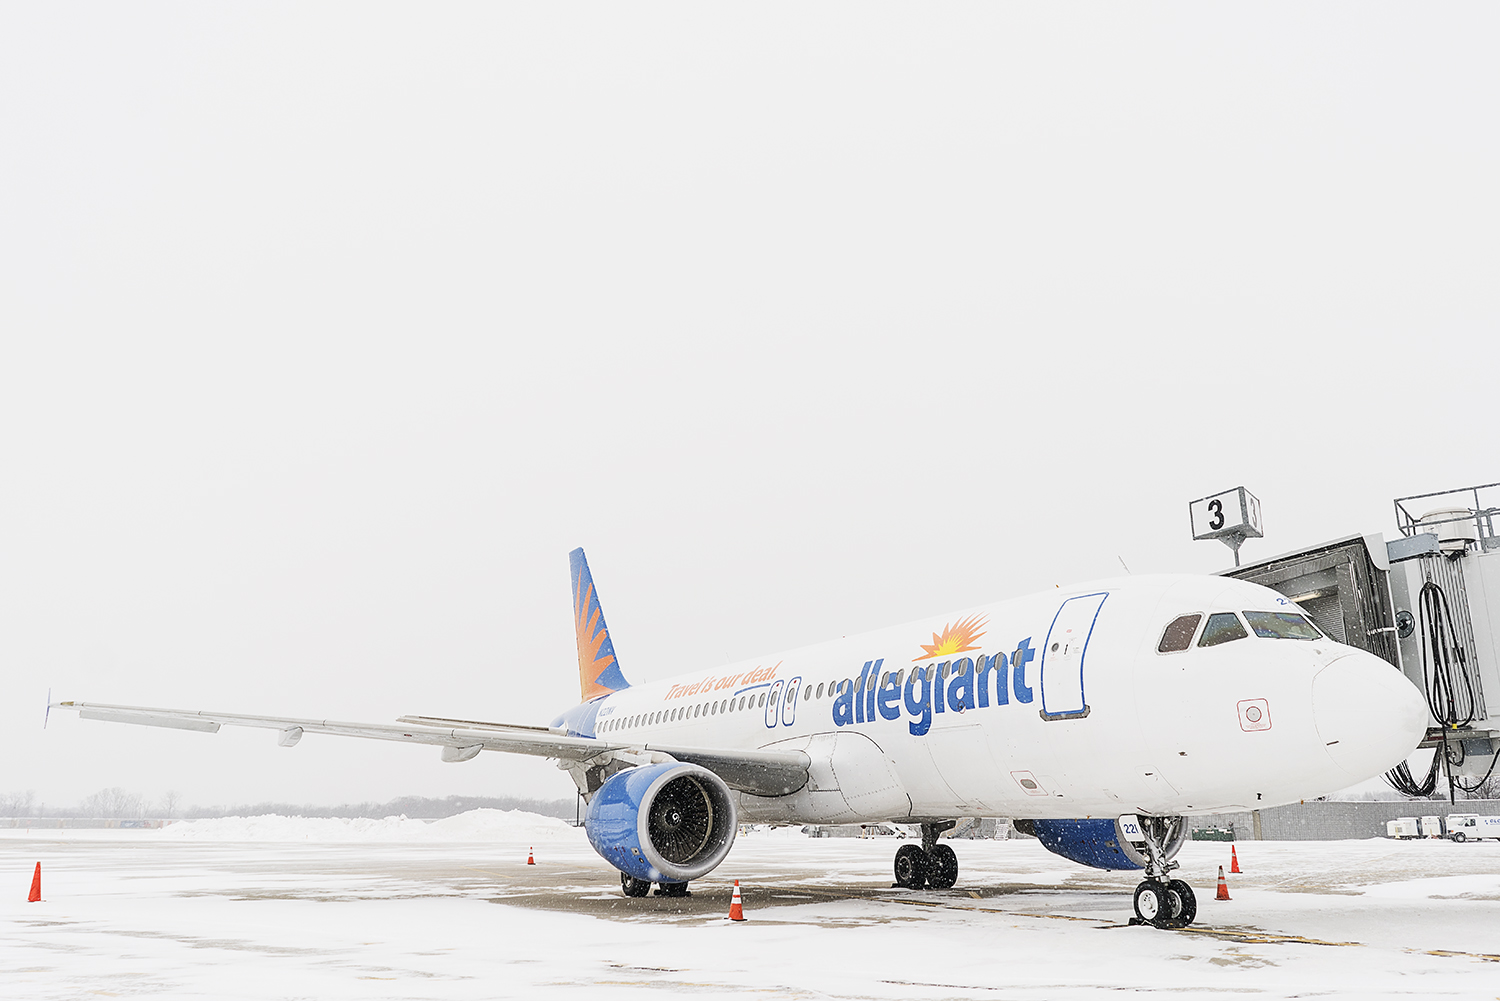 Flint, MI - Wednesday, January 3, 2018: An airplane, part of the Allegiant fleet, waits on the tarmac to be boarded and loaded with luggage at Bishop International Airport.Tim Galloway for FlintSide